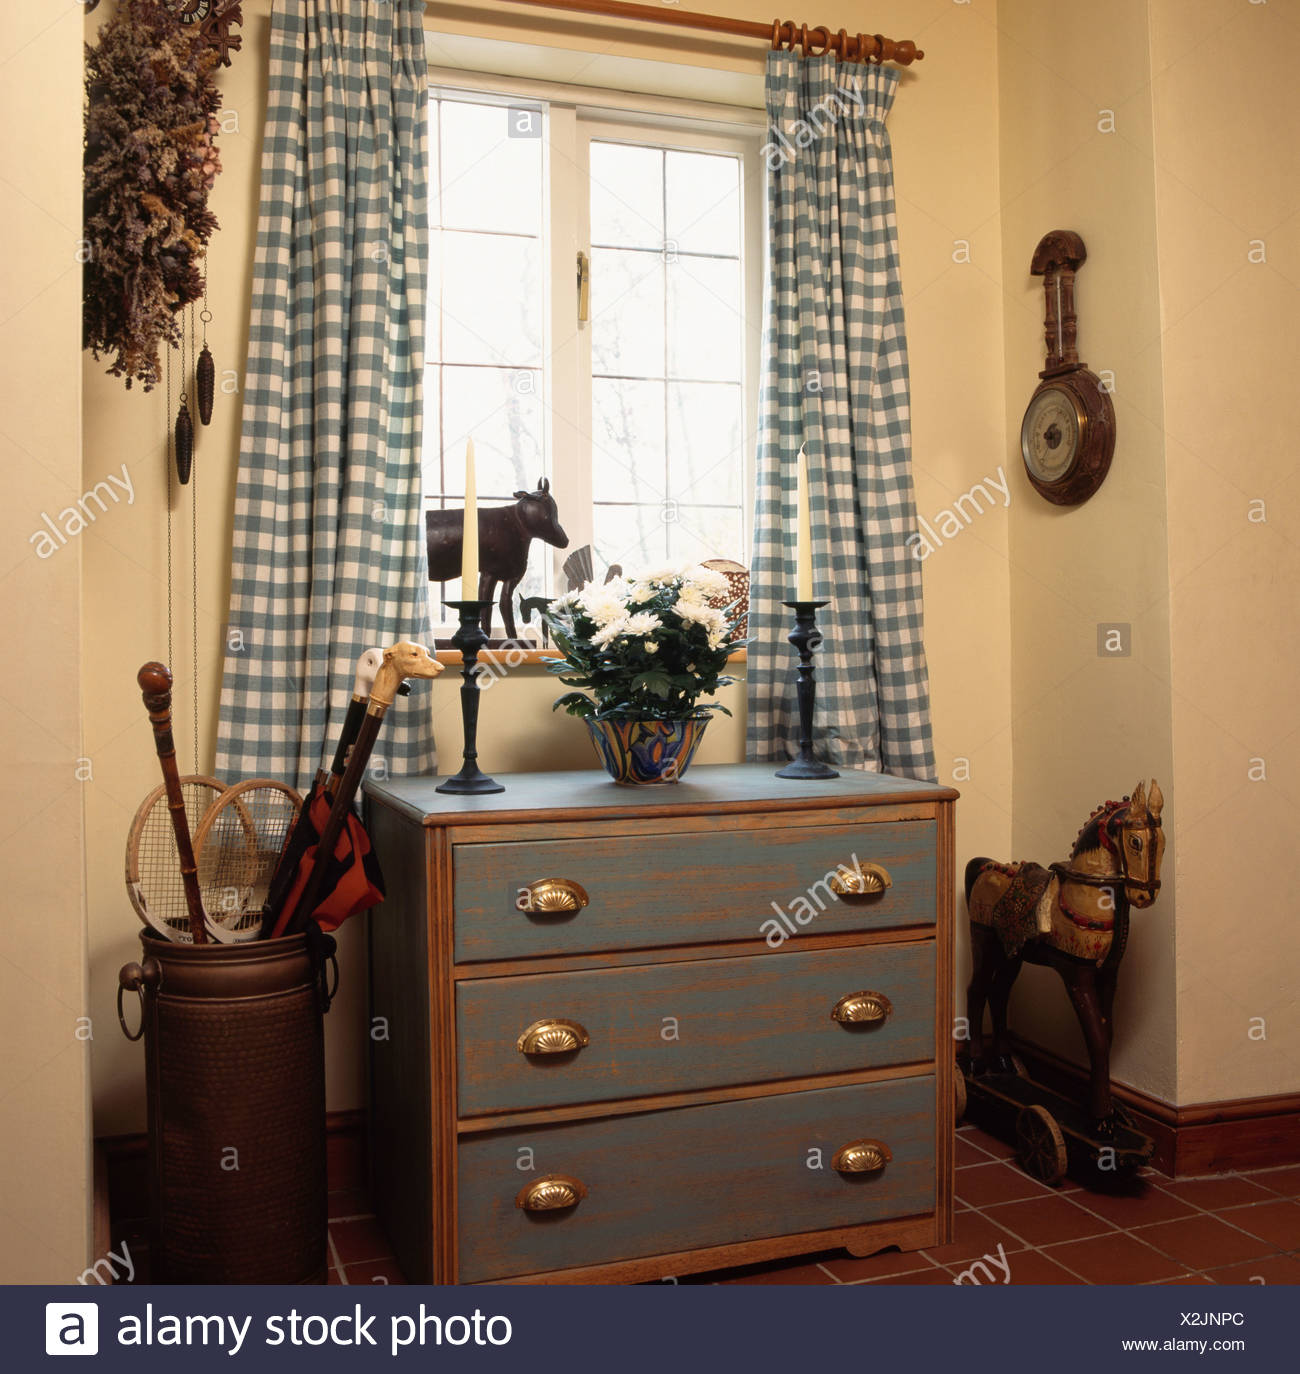 Blue Checked Curtains On Window Above Blue Chest Of Drawers With Distressed  Paint Effect In Small